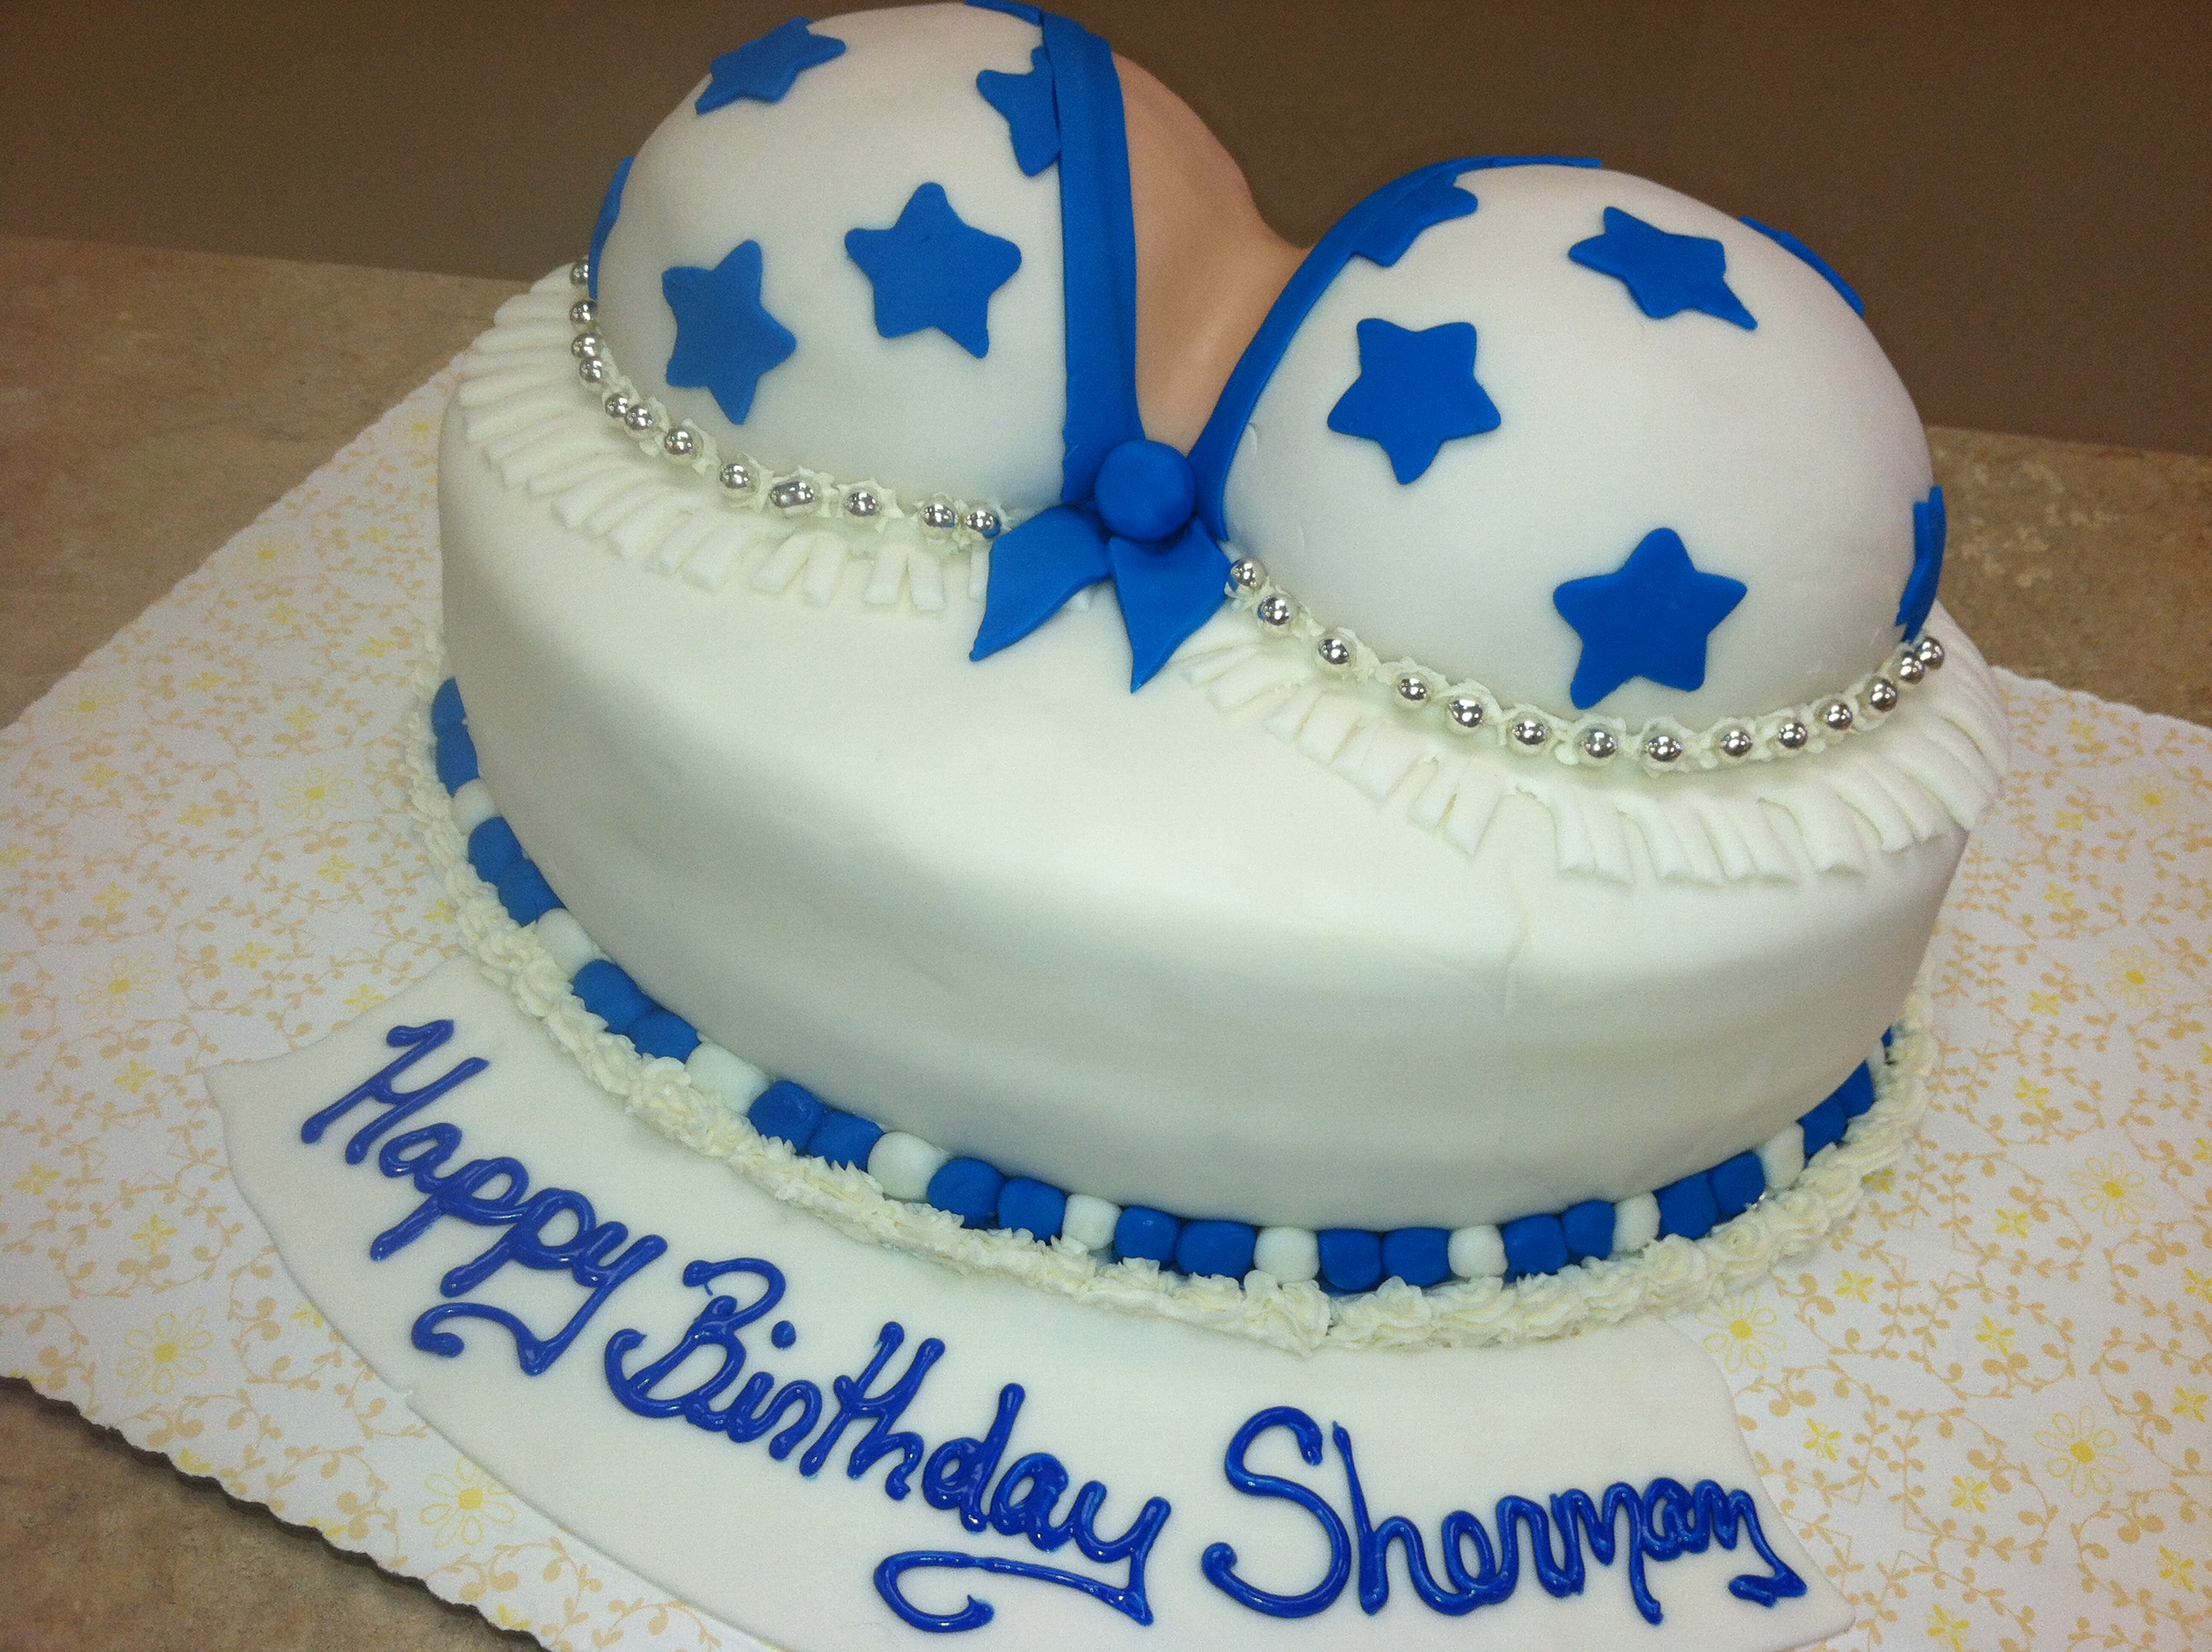 Dallas Cowboys Cheerleader Cake